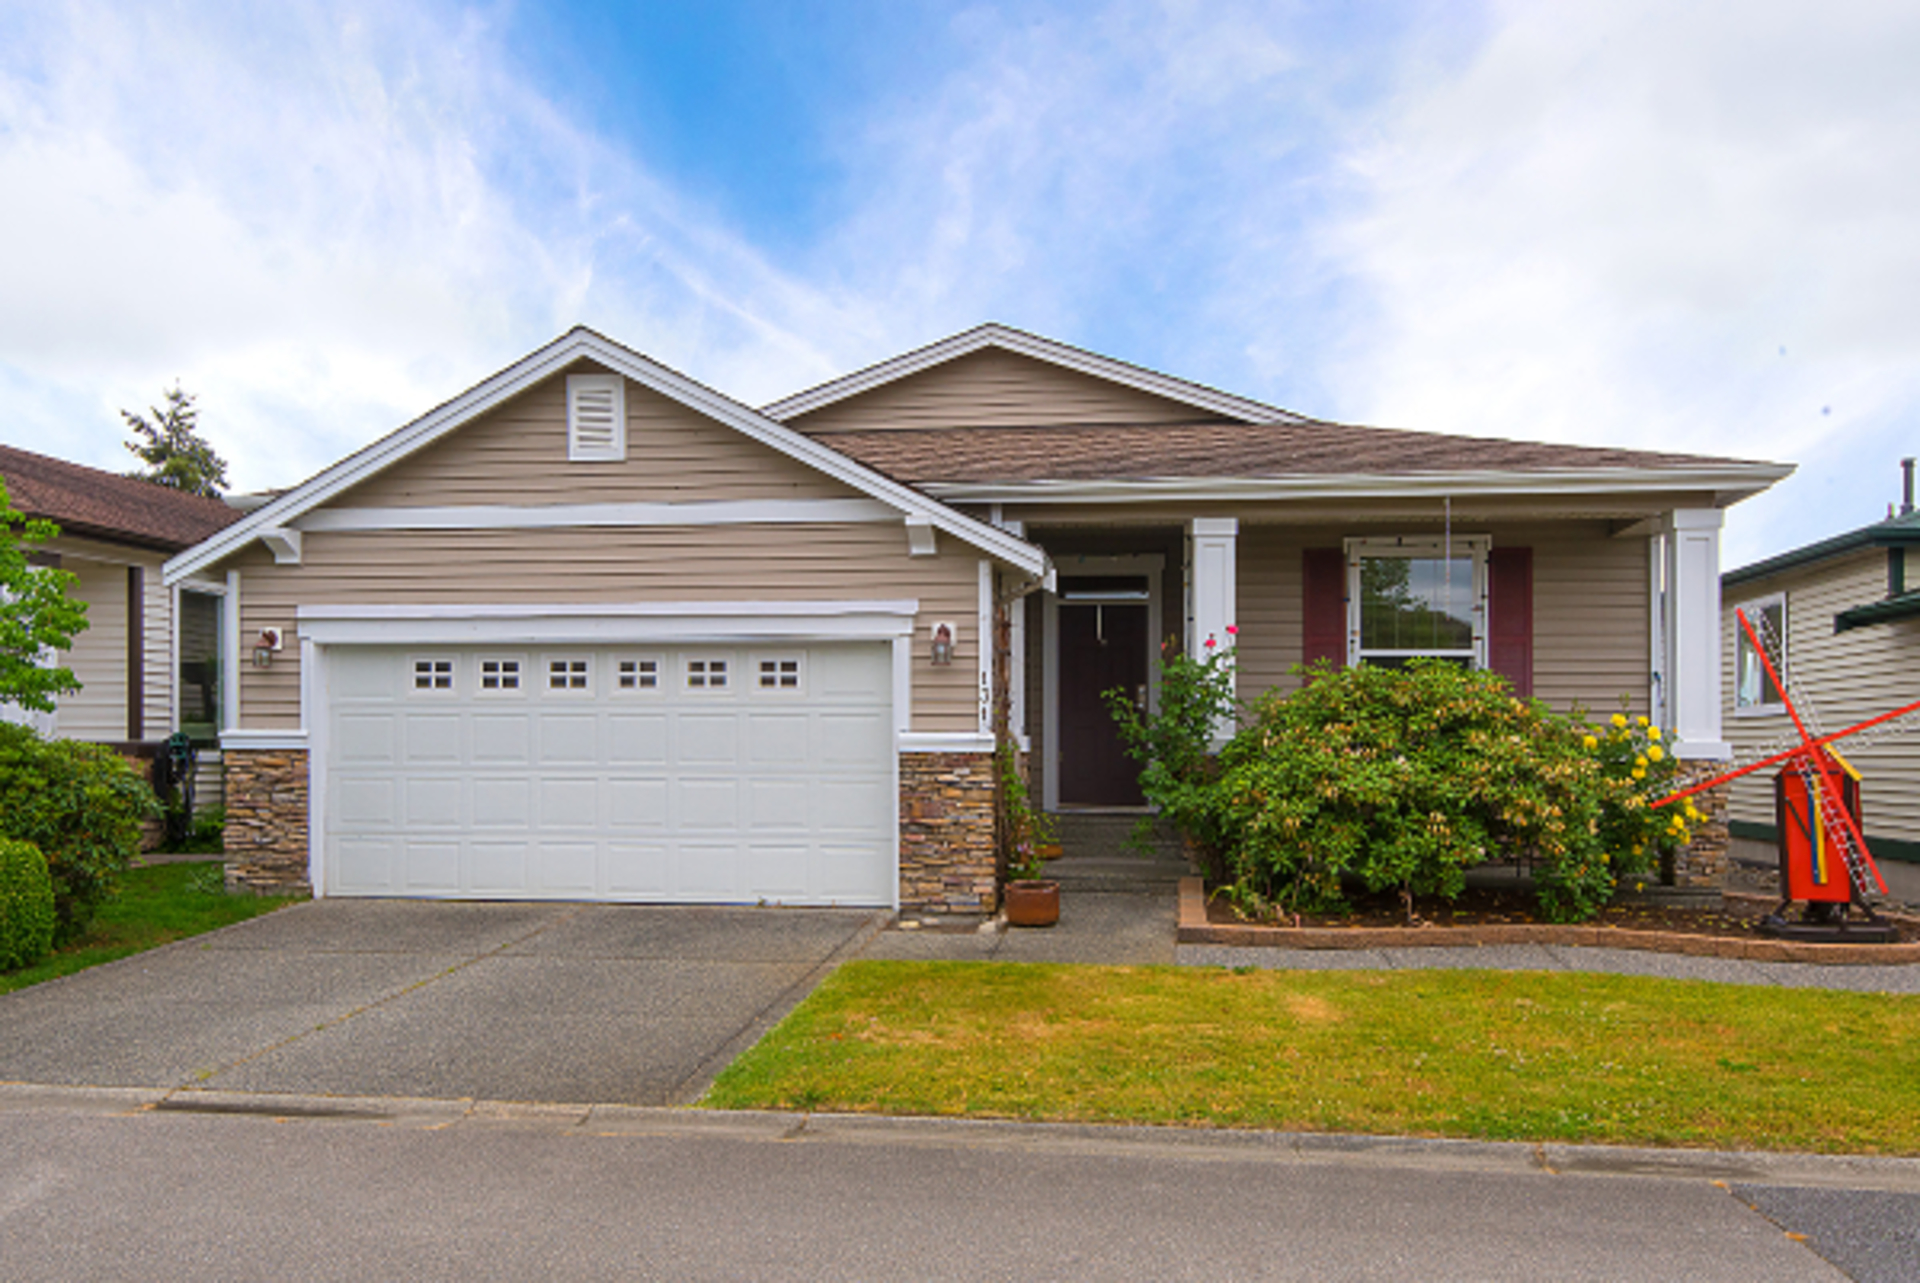 003 at 131 - 19639 Meadow Gardens Way, North Meadows PI, Pitt Meadows